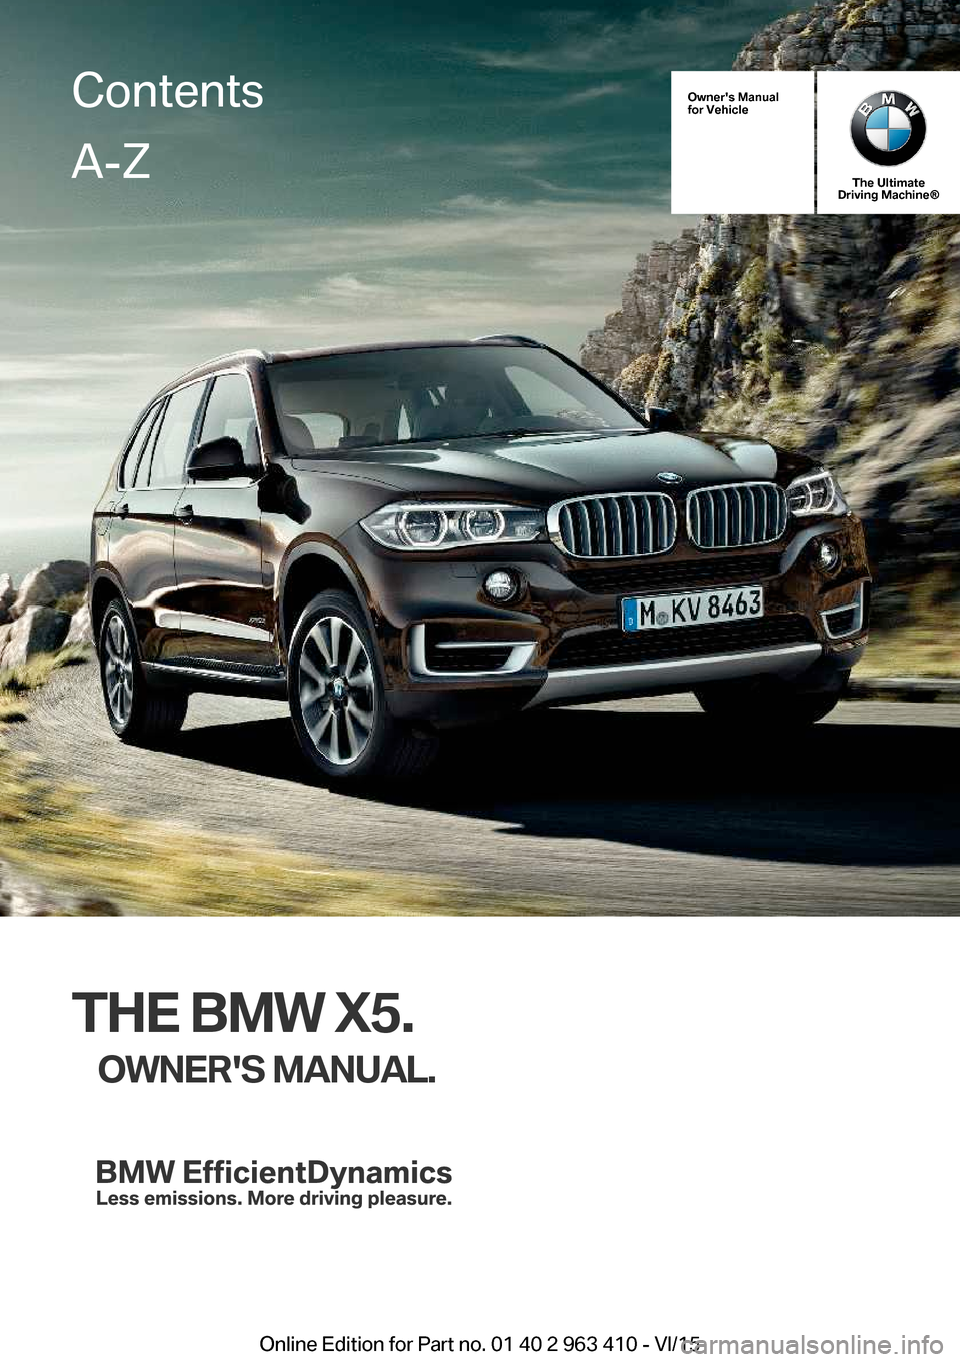 bmw x5 2015 f15 owner's manual